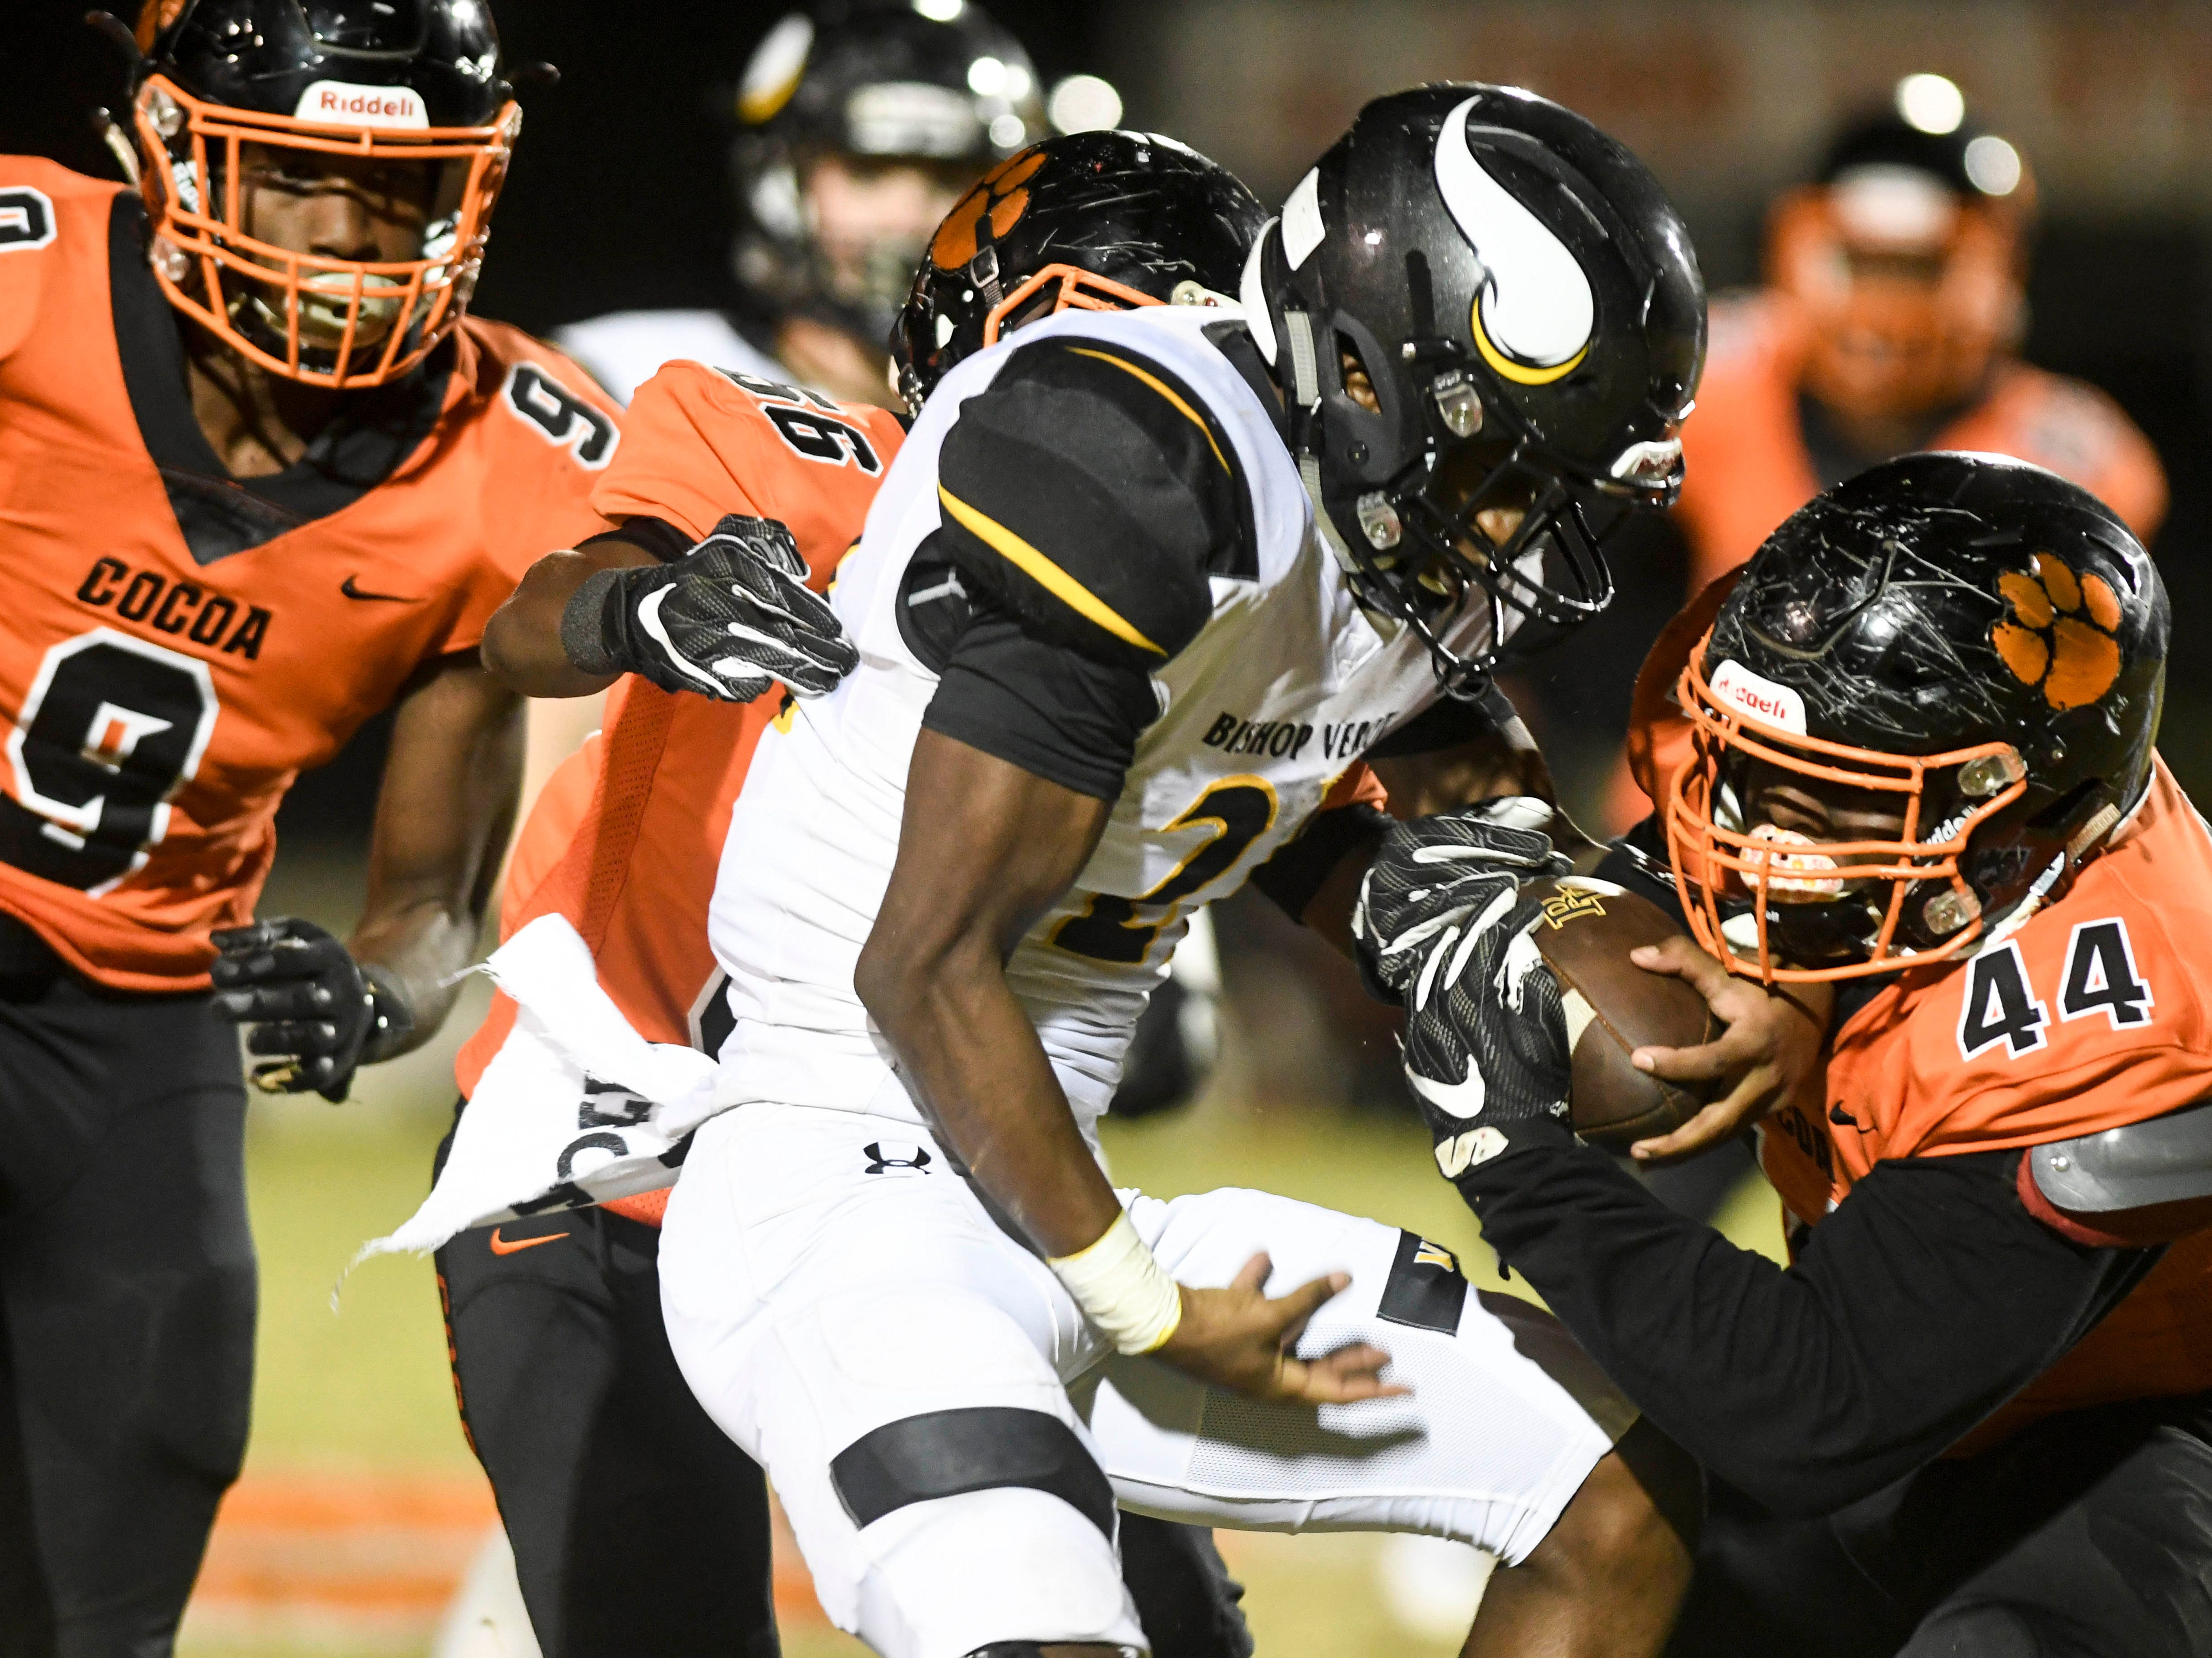 Cocoa defenders Marquise Freeman (9) AJ Williams (56) and Dajavon White take down Bishop Verot ballcarrier Terry Lindsey during Friday's game at Blake Stadium.